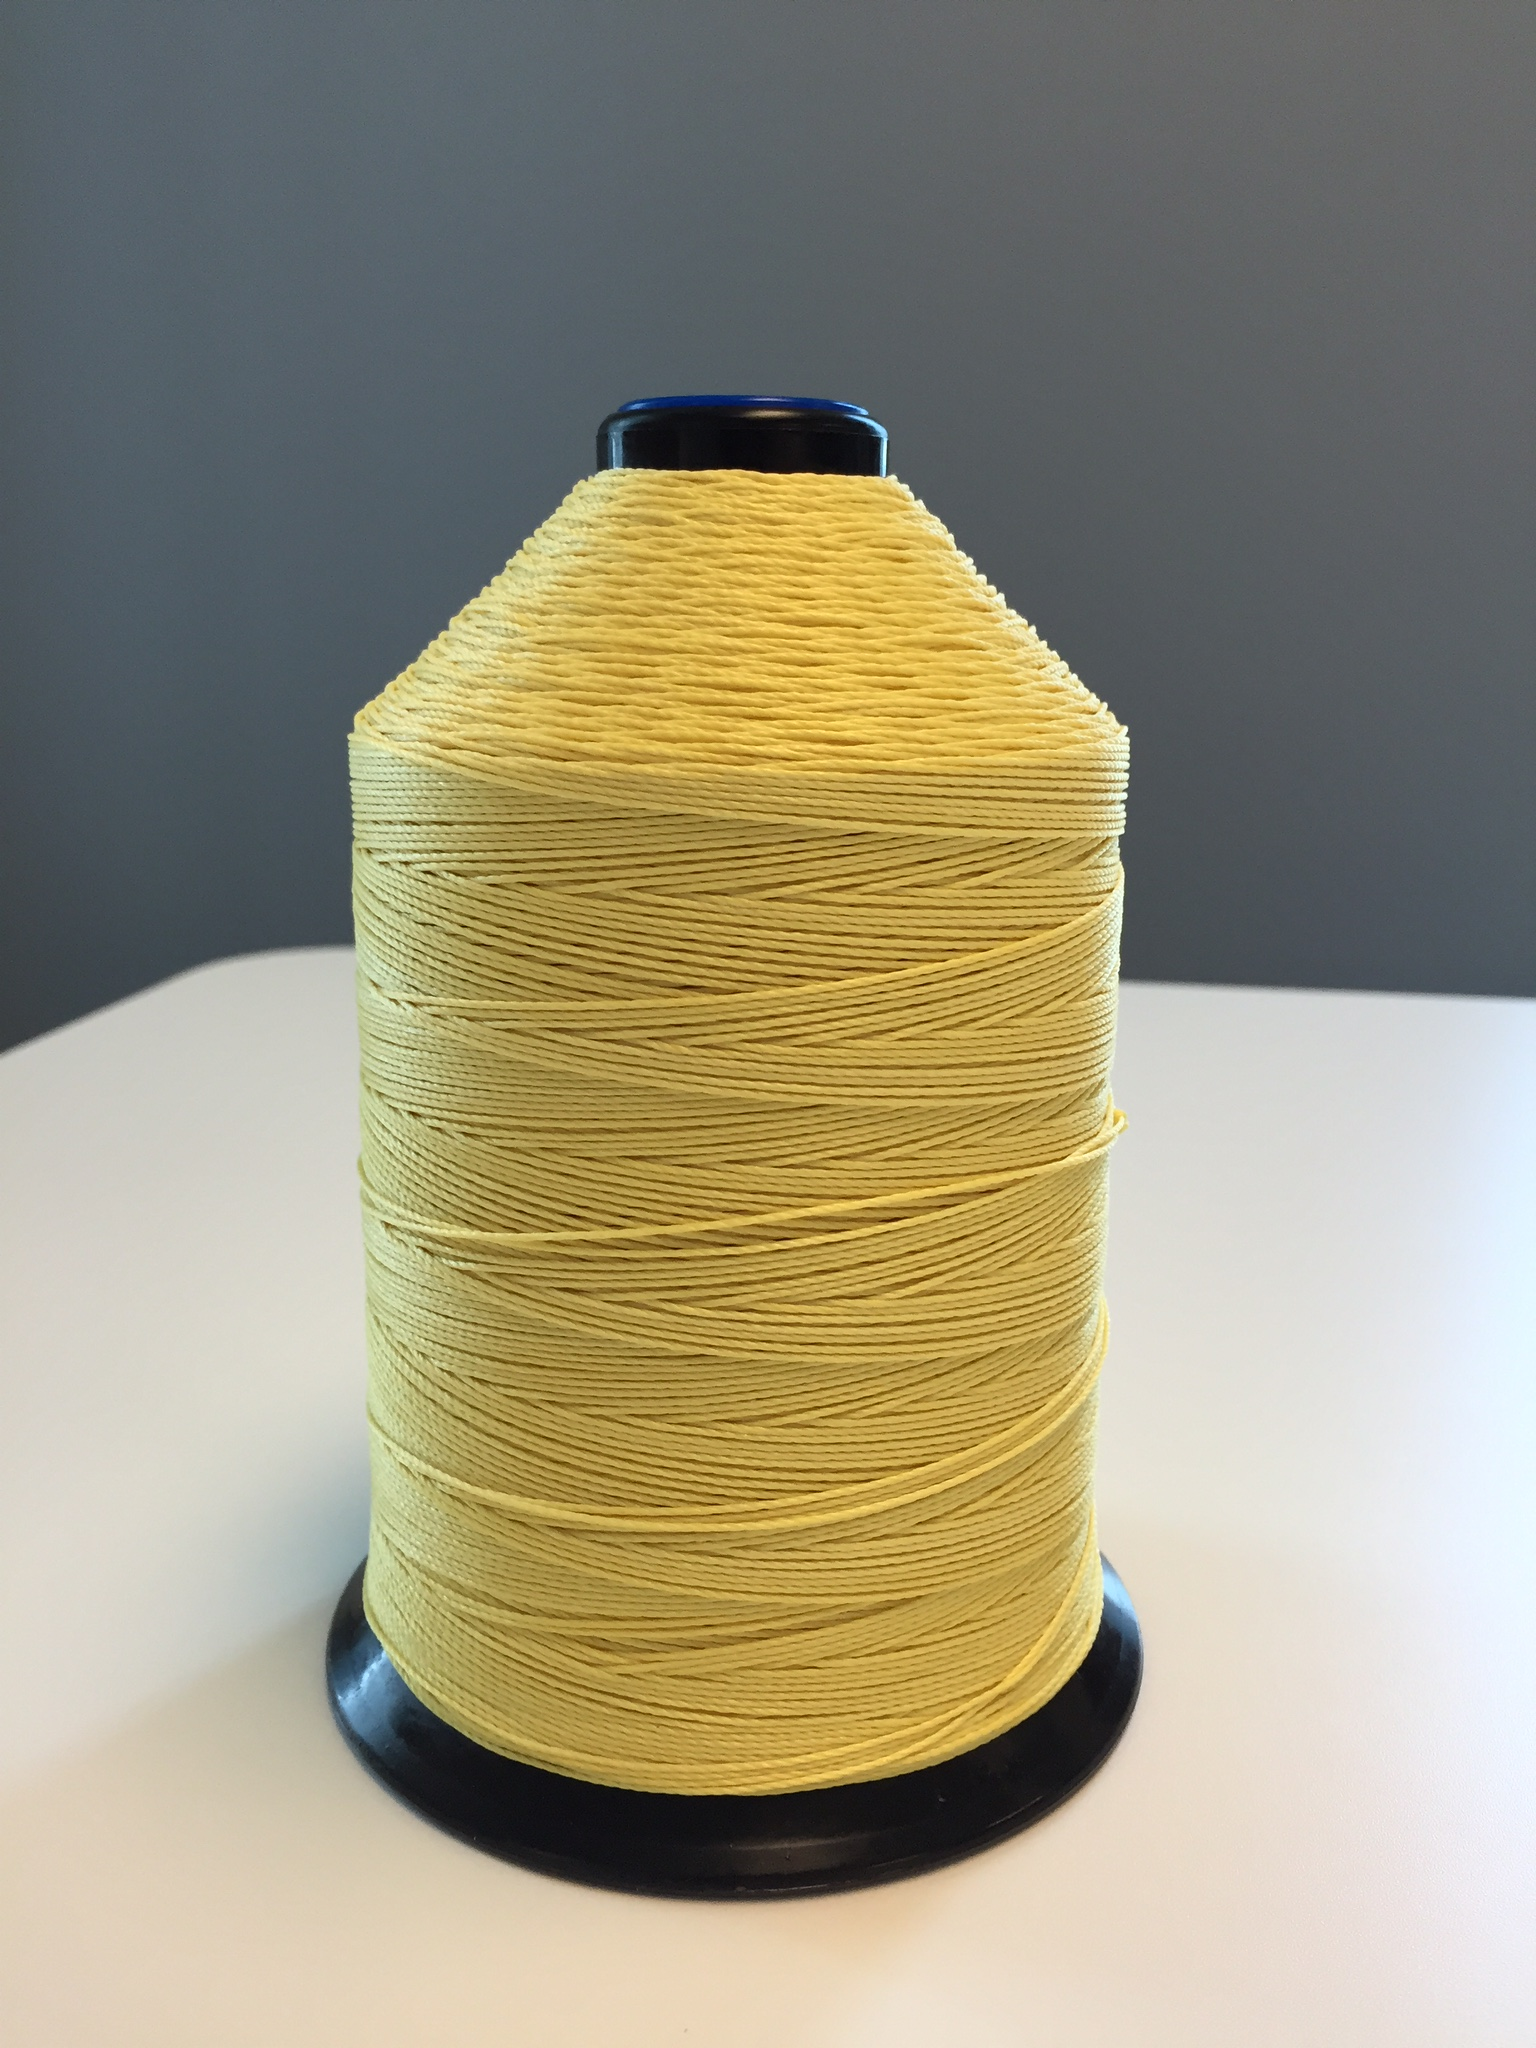 Kevlar ® Sewing Thread